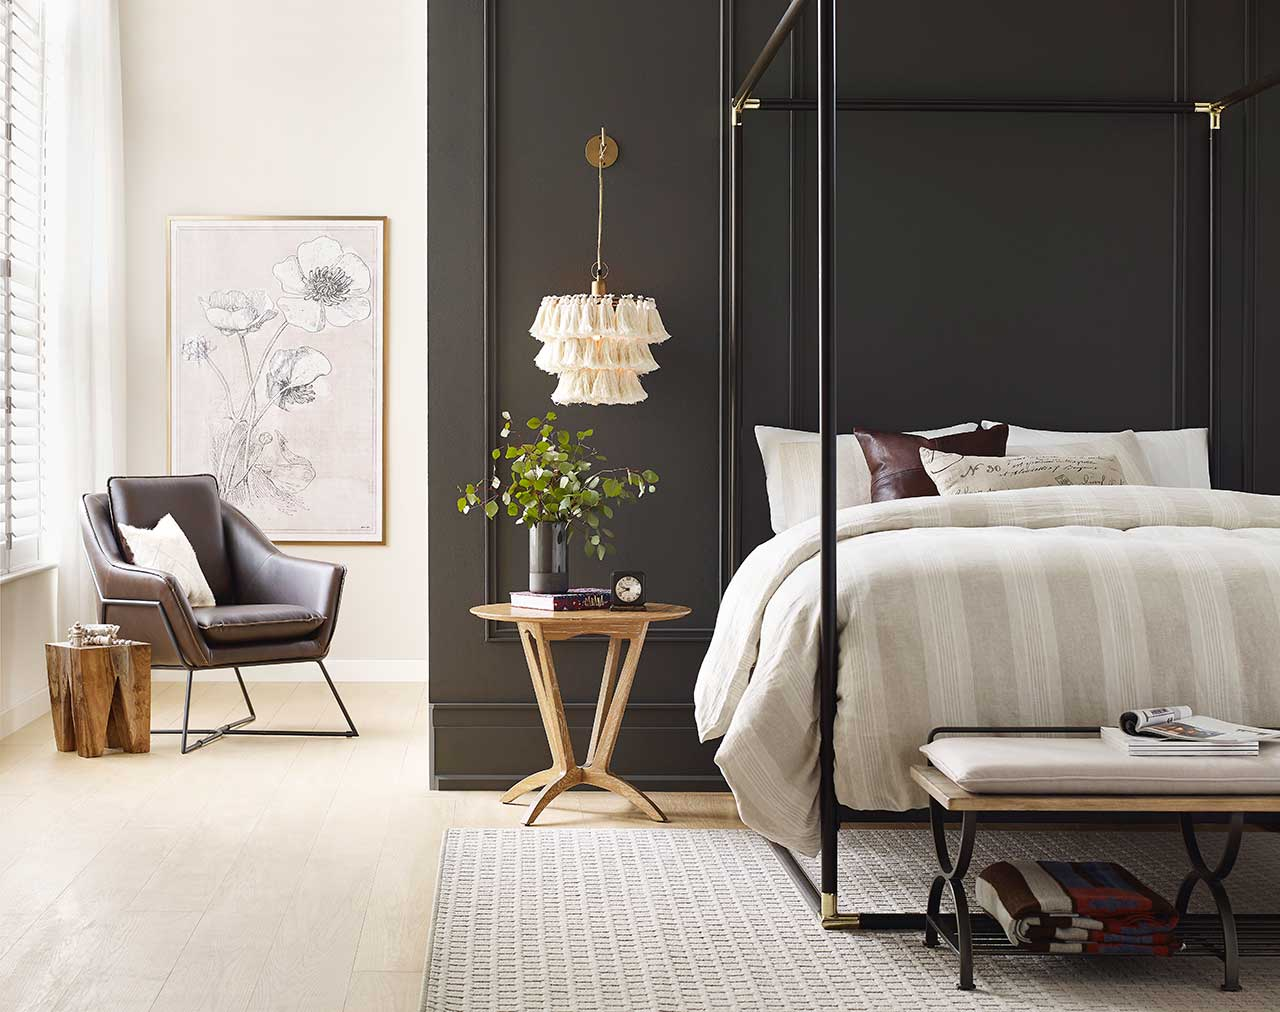 Sherwin-Williams 2021 Color of the Year + 15 Accessories Inspired by It